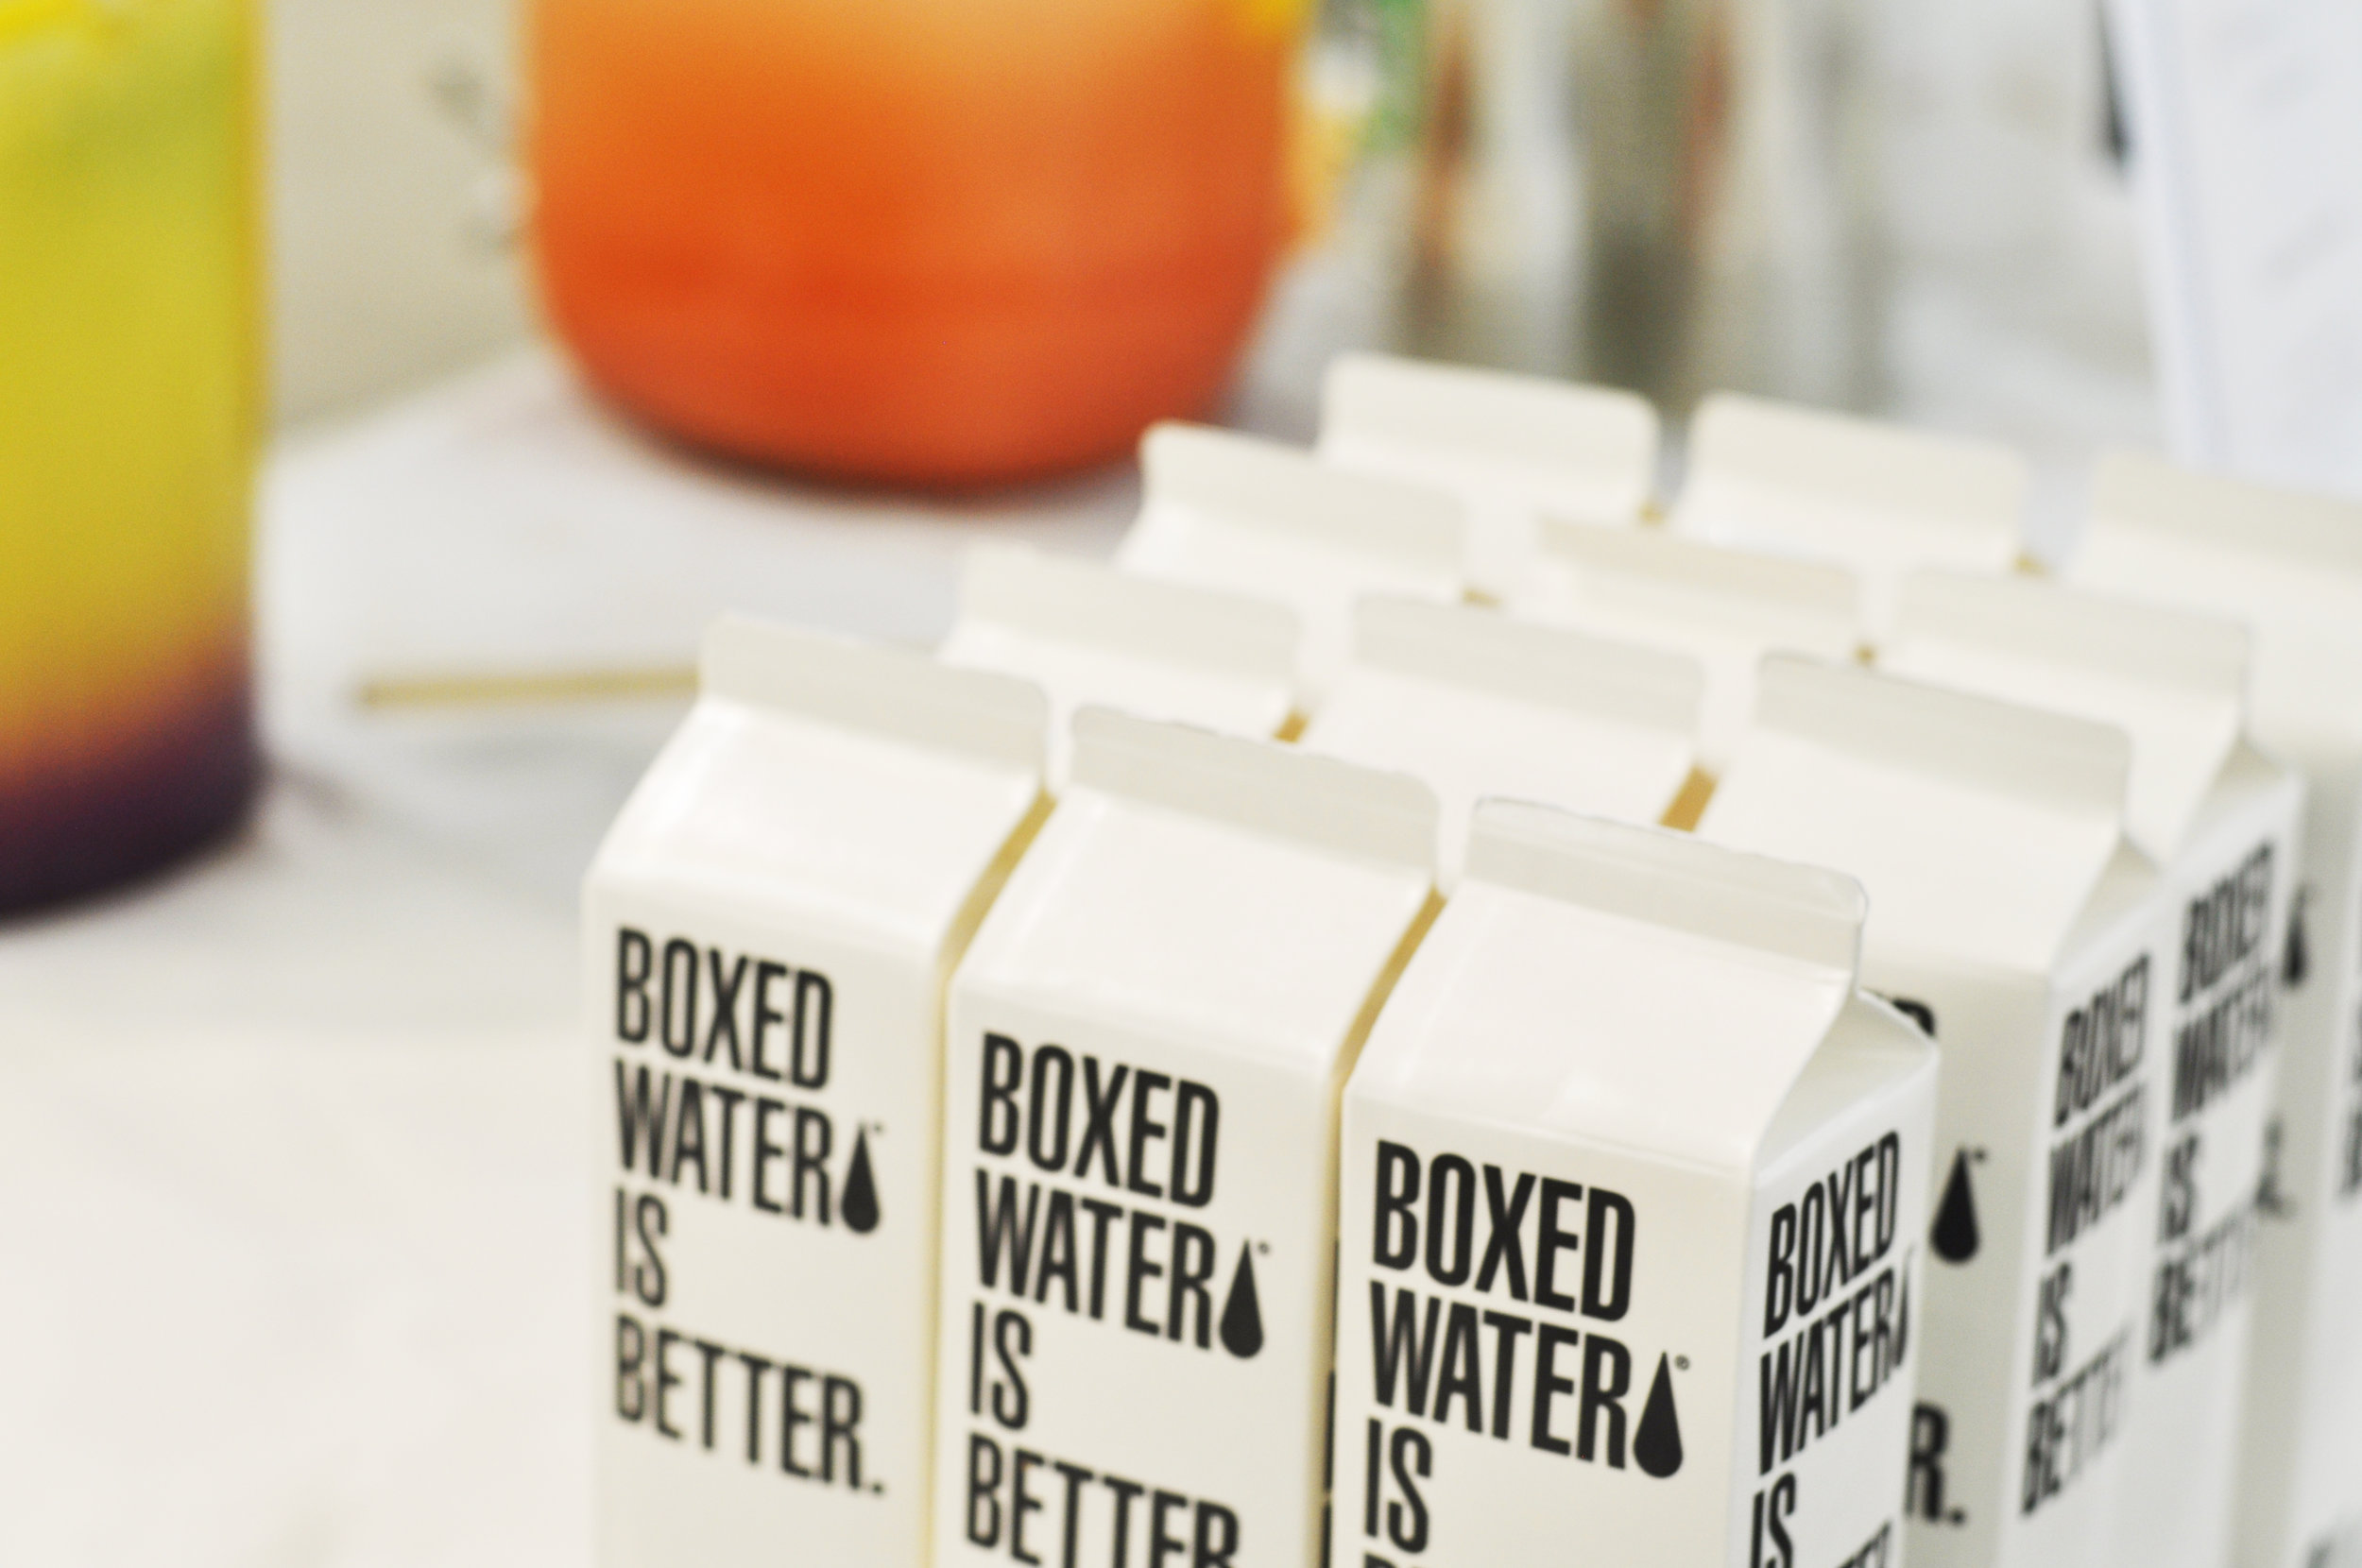 A beautiful shot by Stefan Grant of Boxed Water, which is better :)